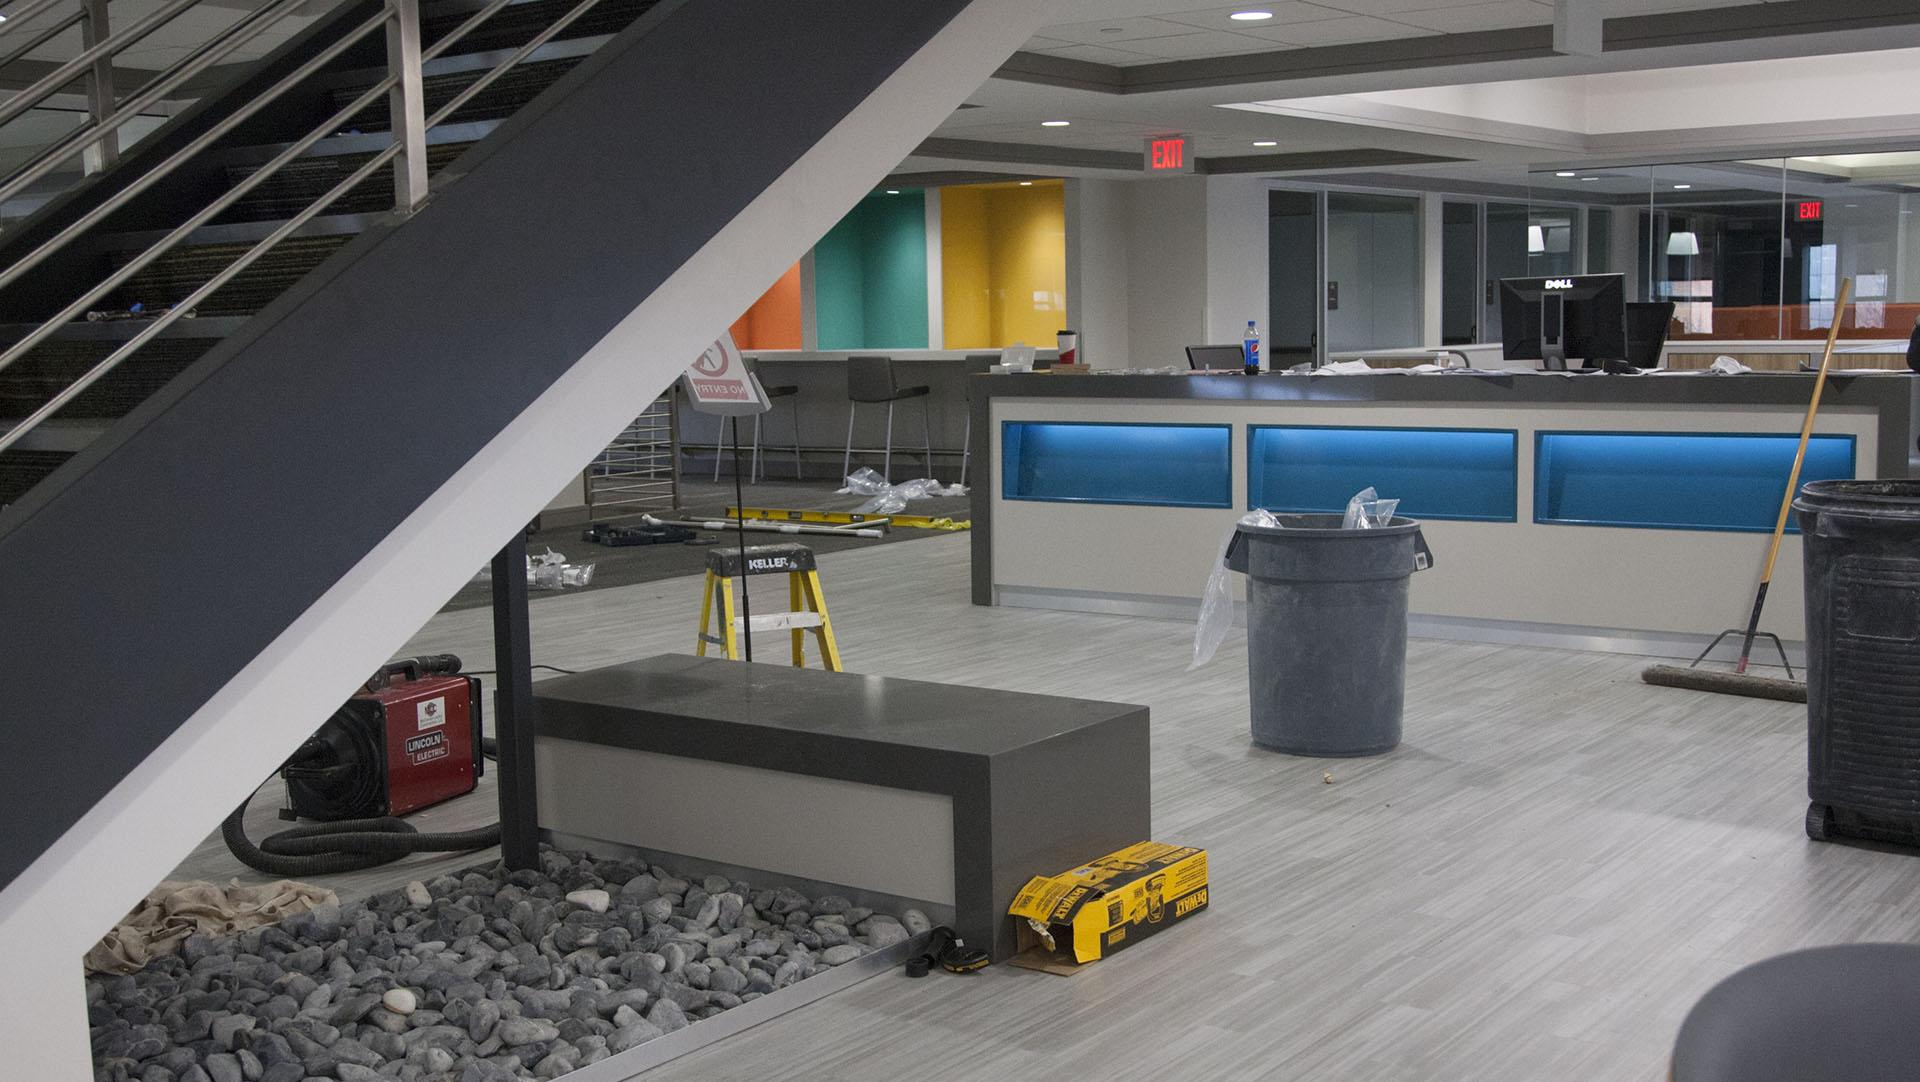 Construction finishes at the new library on the third floor of the Tippie College of Business. The new third floor library, set to open in two days, will feature many groups study spaces and a new cafe area for students. (Katie Goodale/The Daily Iowan)